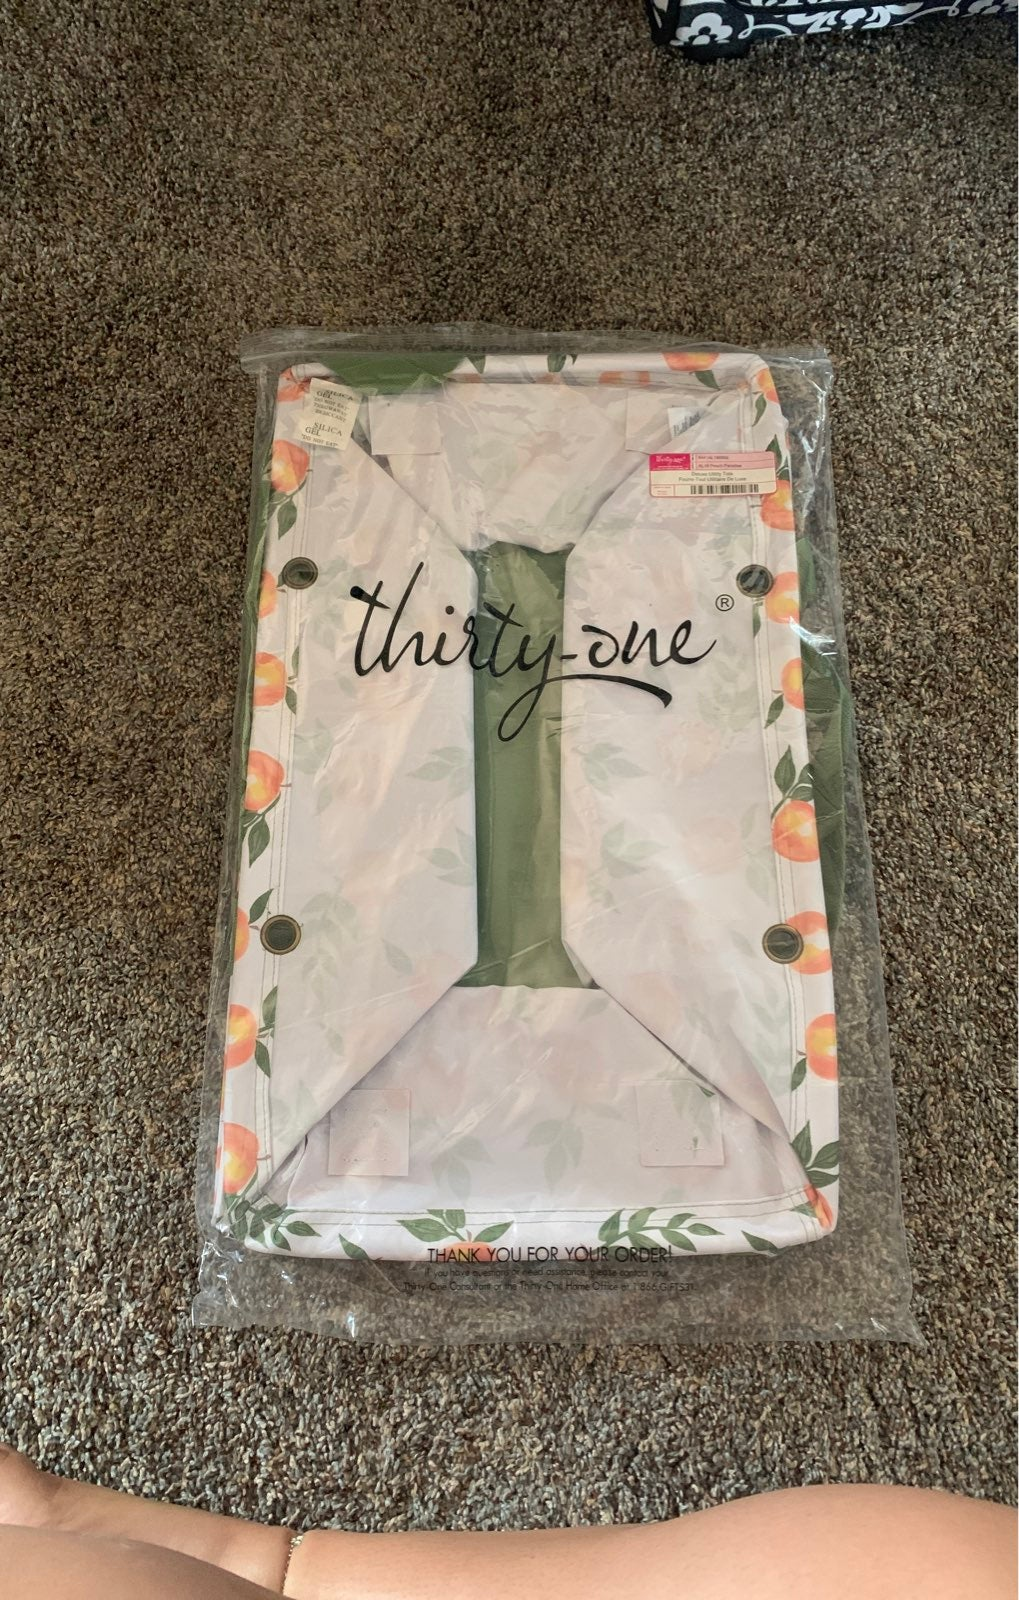 Thirty-One tote